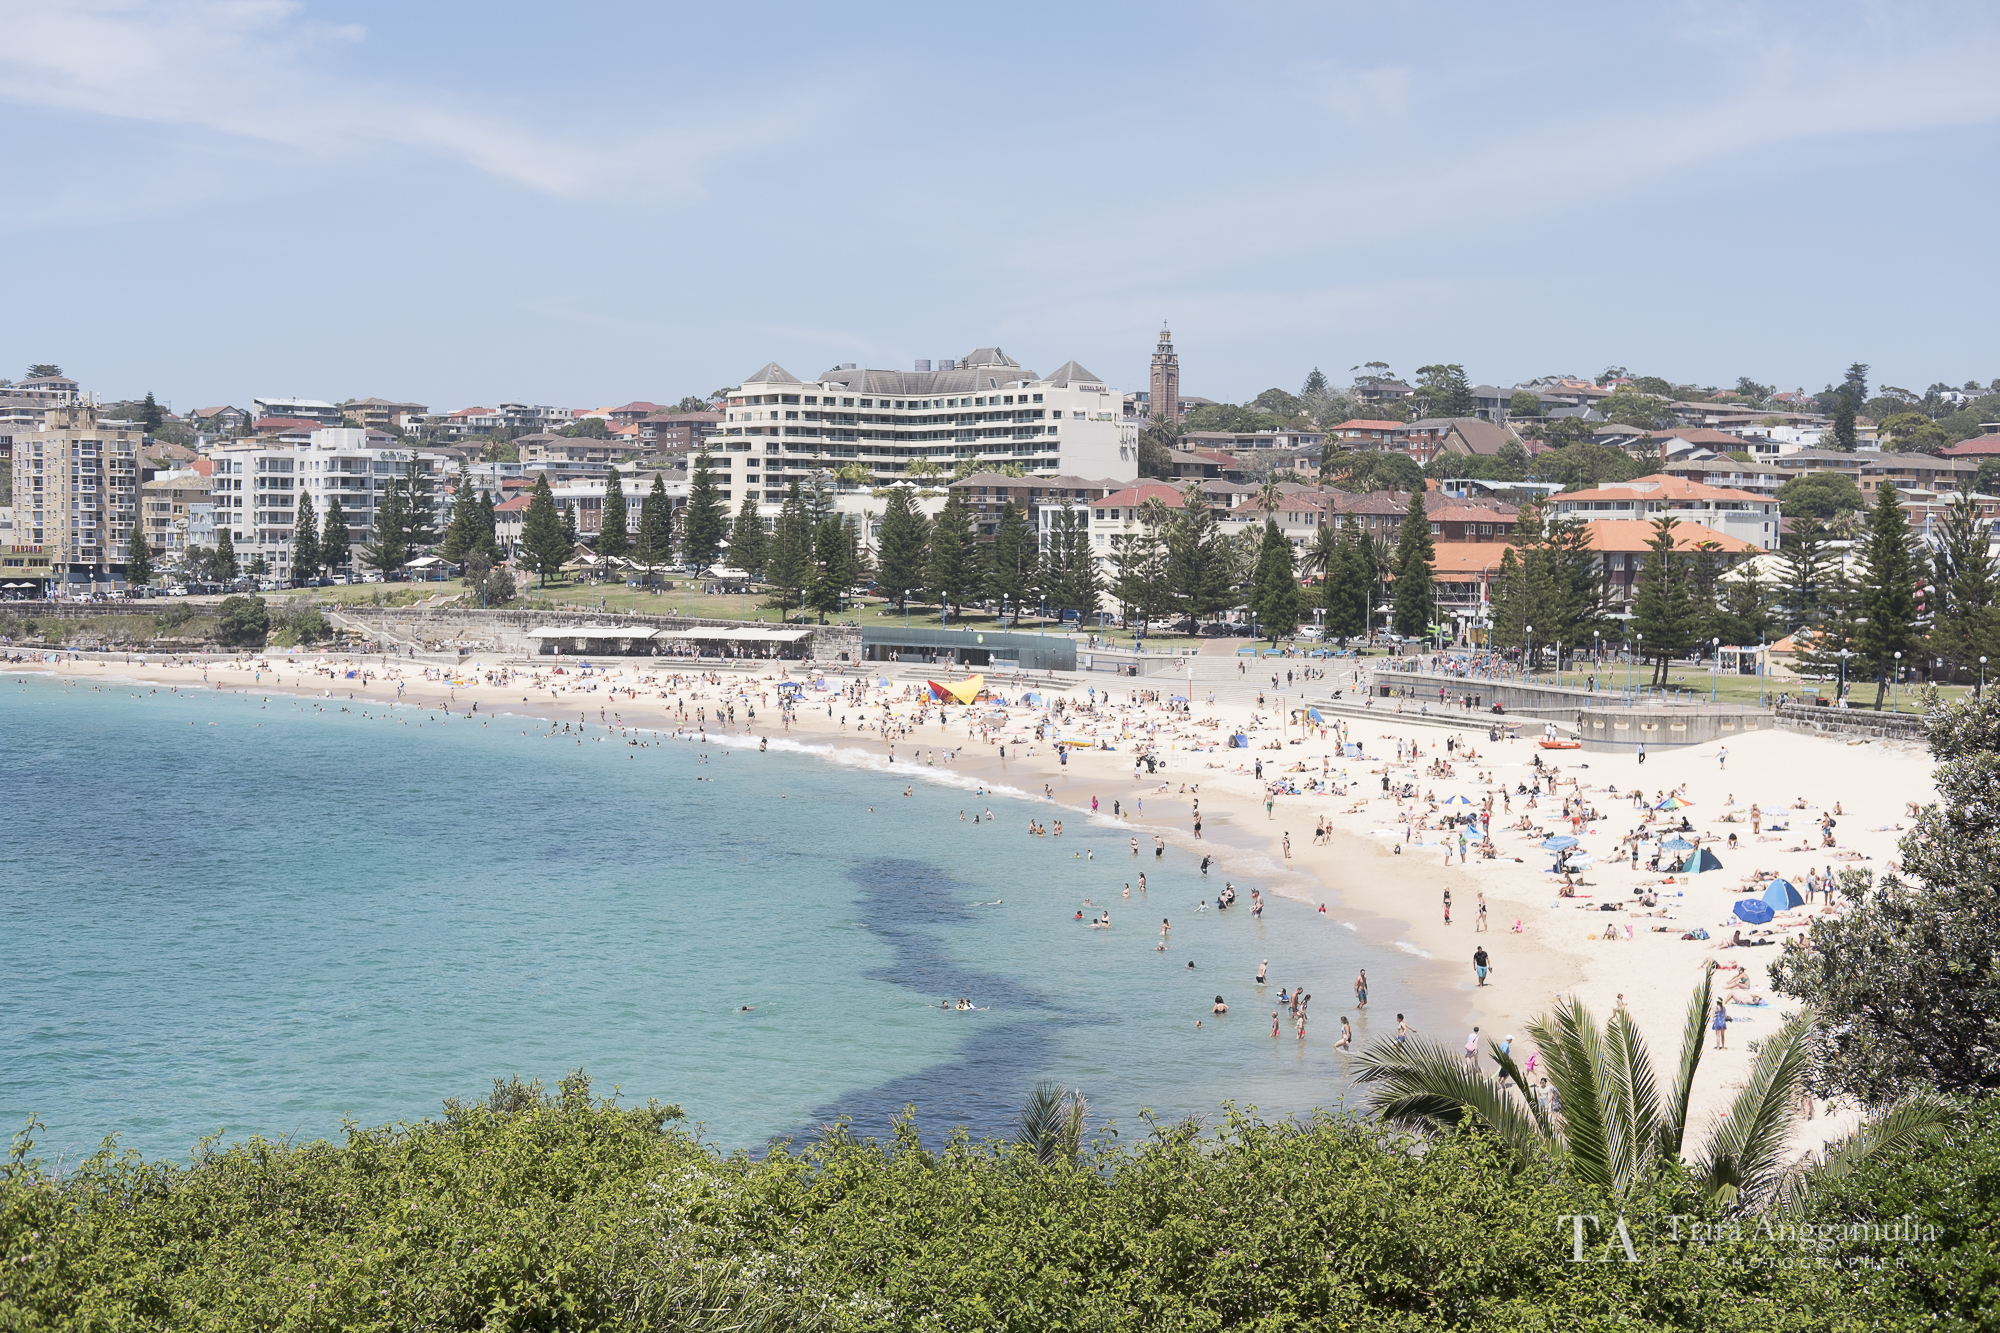 A view towards Coogee Beach.